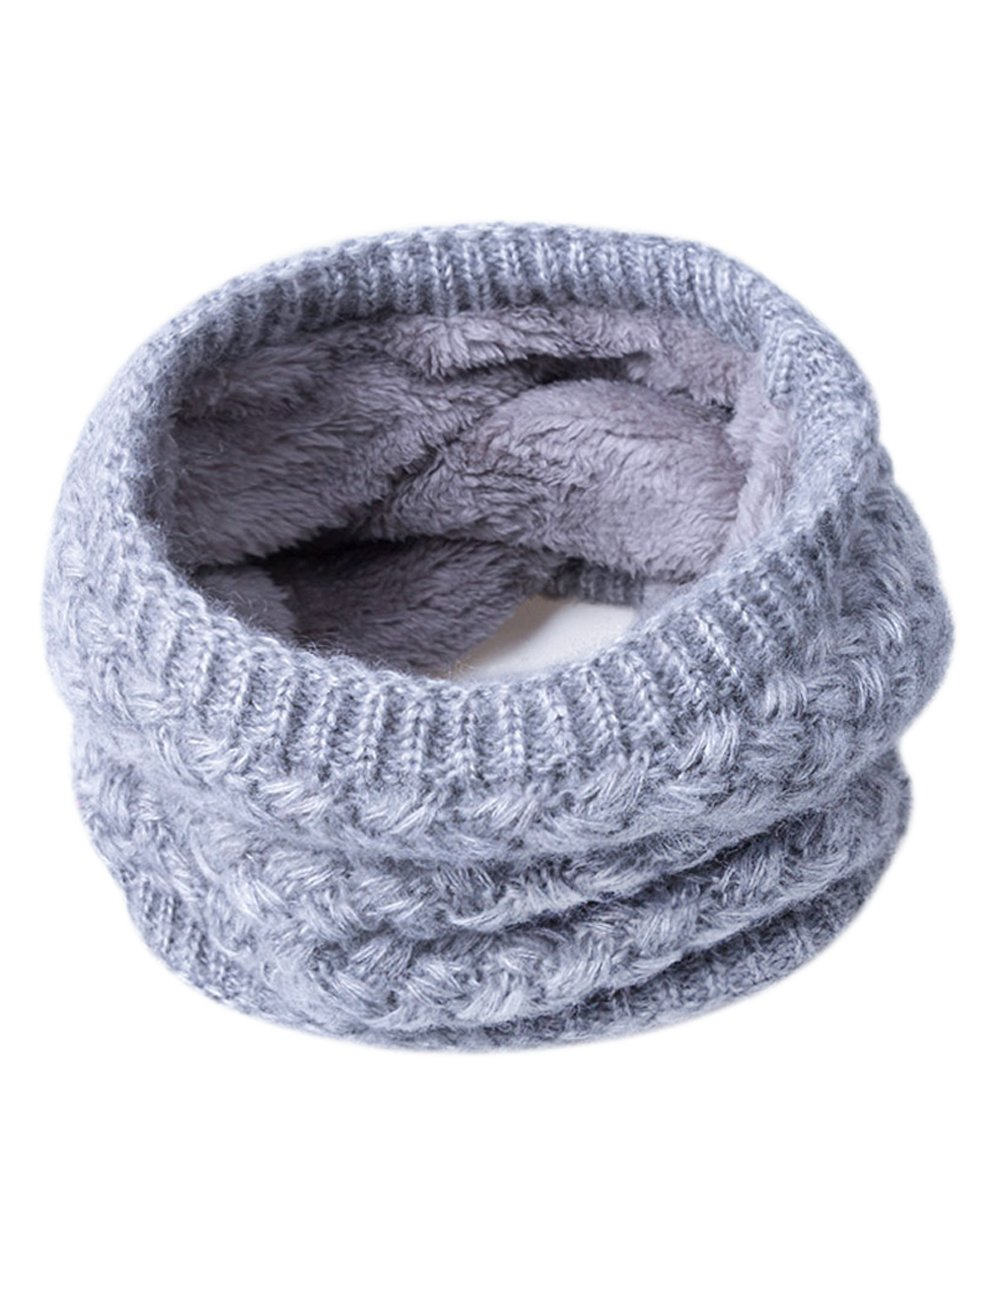 ADUO Winter Knitted Infinity Scarf Double-Layer Fashion Fleece Lining Knit Neck Warmer Circle Scarf for Women Men